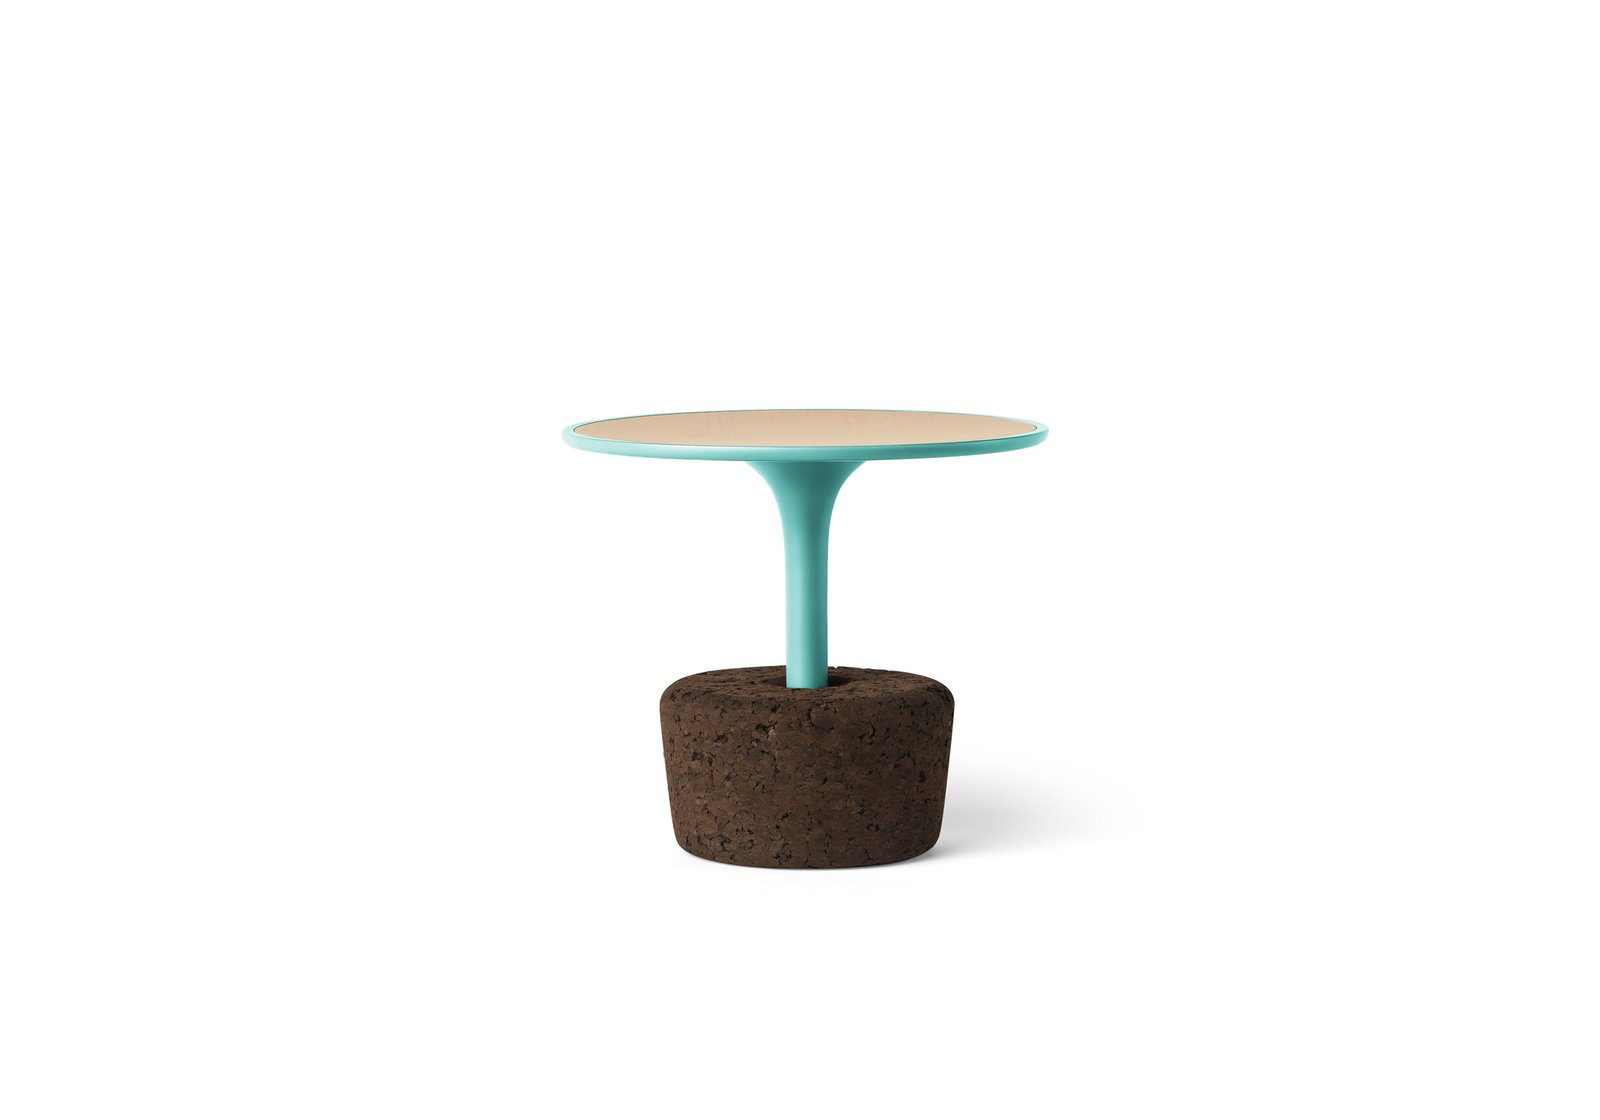 "Flora Small Low  FLORA is a set of coffee tables that refers to the plants we offer to the ones we love, so there is a similarity between taking care of plants and taking care of the objects. These versatile tables combine natural materials, with four sizes and six different colored frame finishes and may be used separately or together.  Size  Ø40 x H35 cm / Ø15,7'' x H14''.  Weight  4,3 kg / 9,5 lbs.  Search ""과천출장안마【Ø1Ø↔59Ø6↔5334】⊀후불결제⊁과천출장아가씨추천 과천콜걸출장안마후기 【S급매니저】과천콜걸출장마사지 과천출장샵강추 과천출장안마모텔7과천출장맛사지후기"""